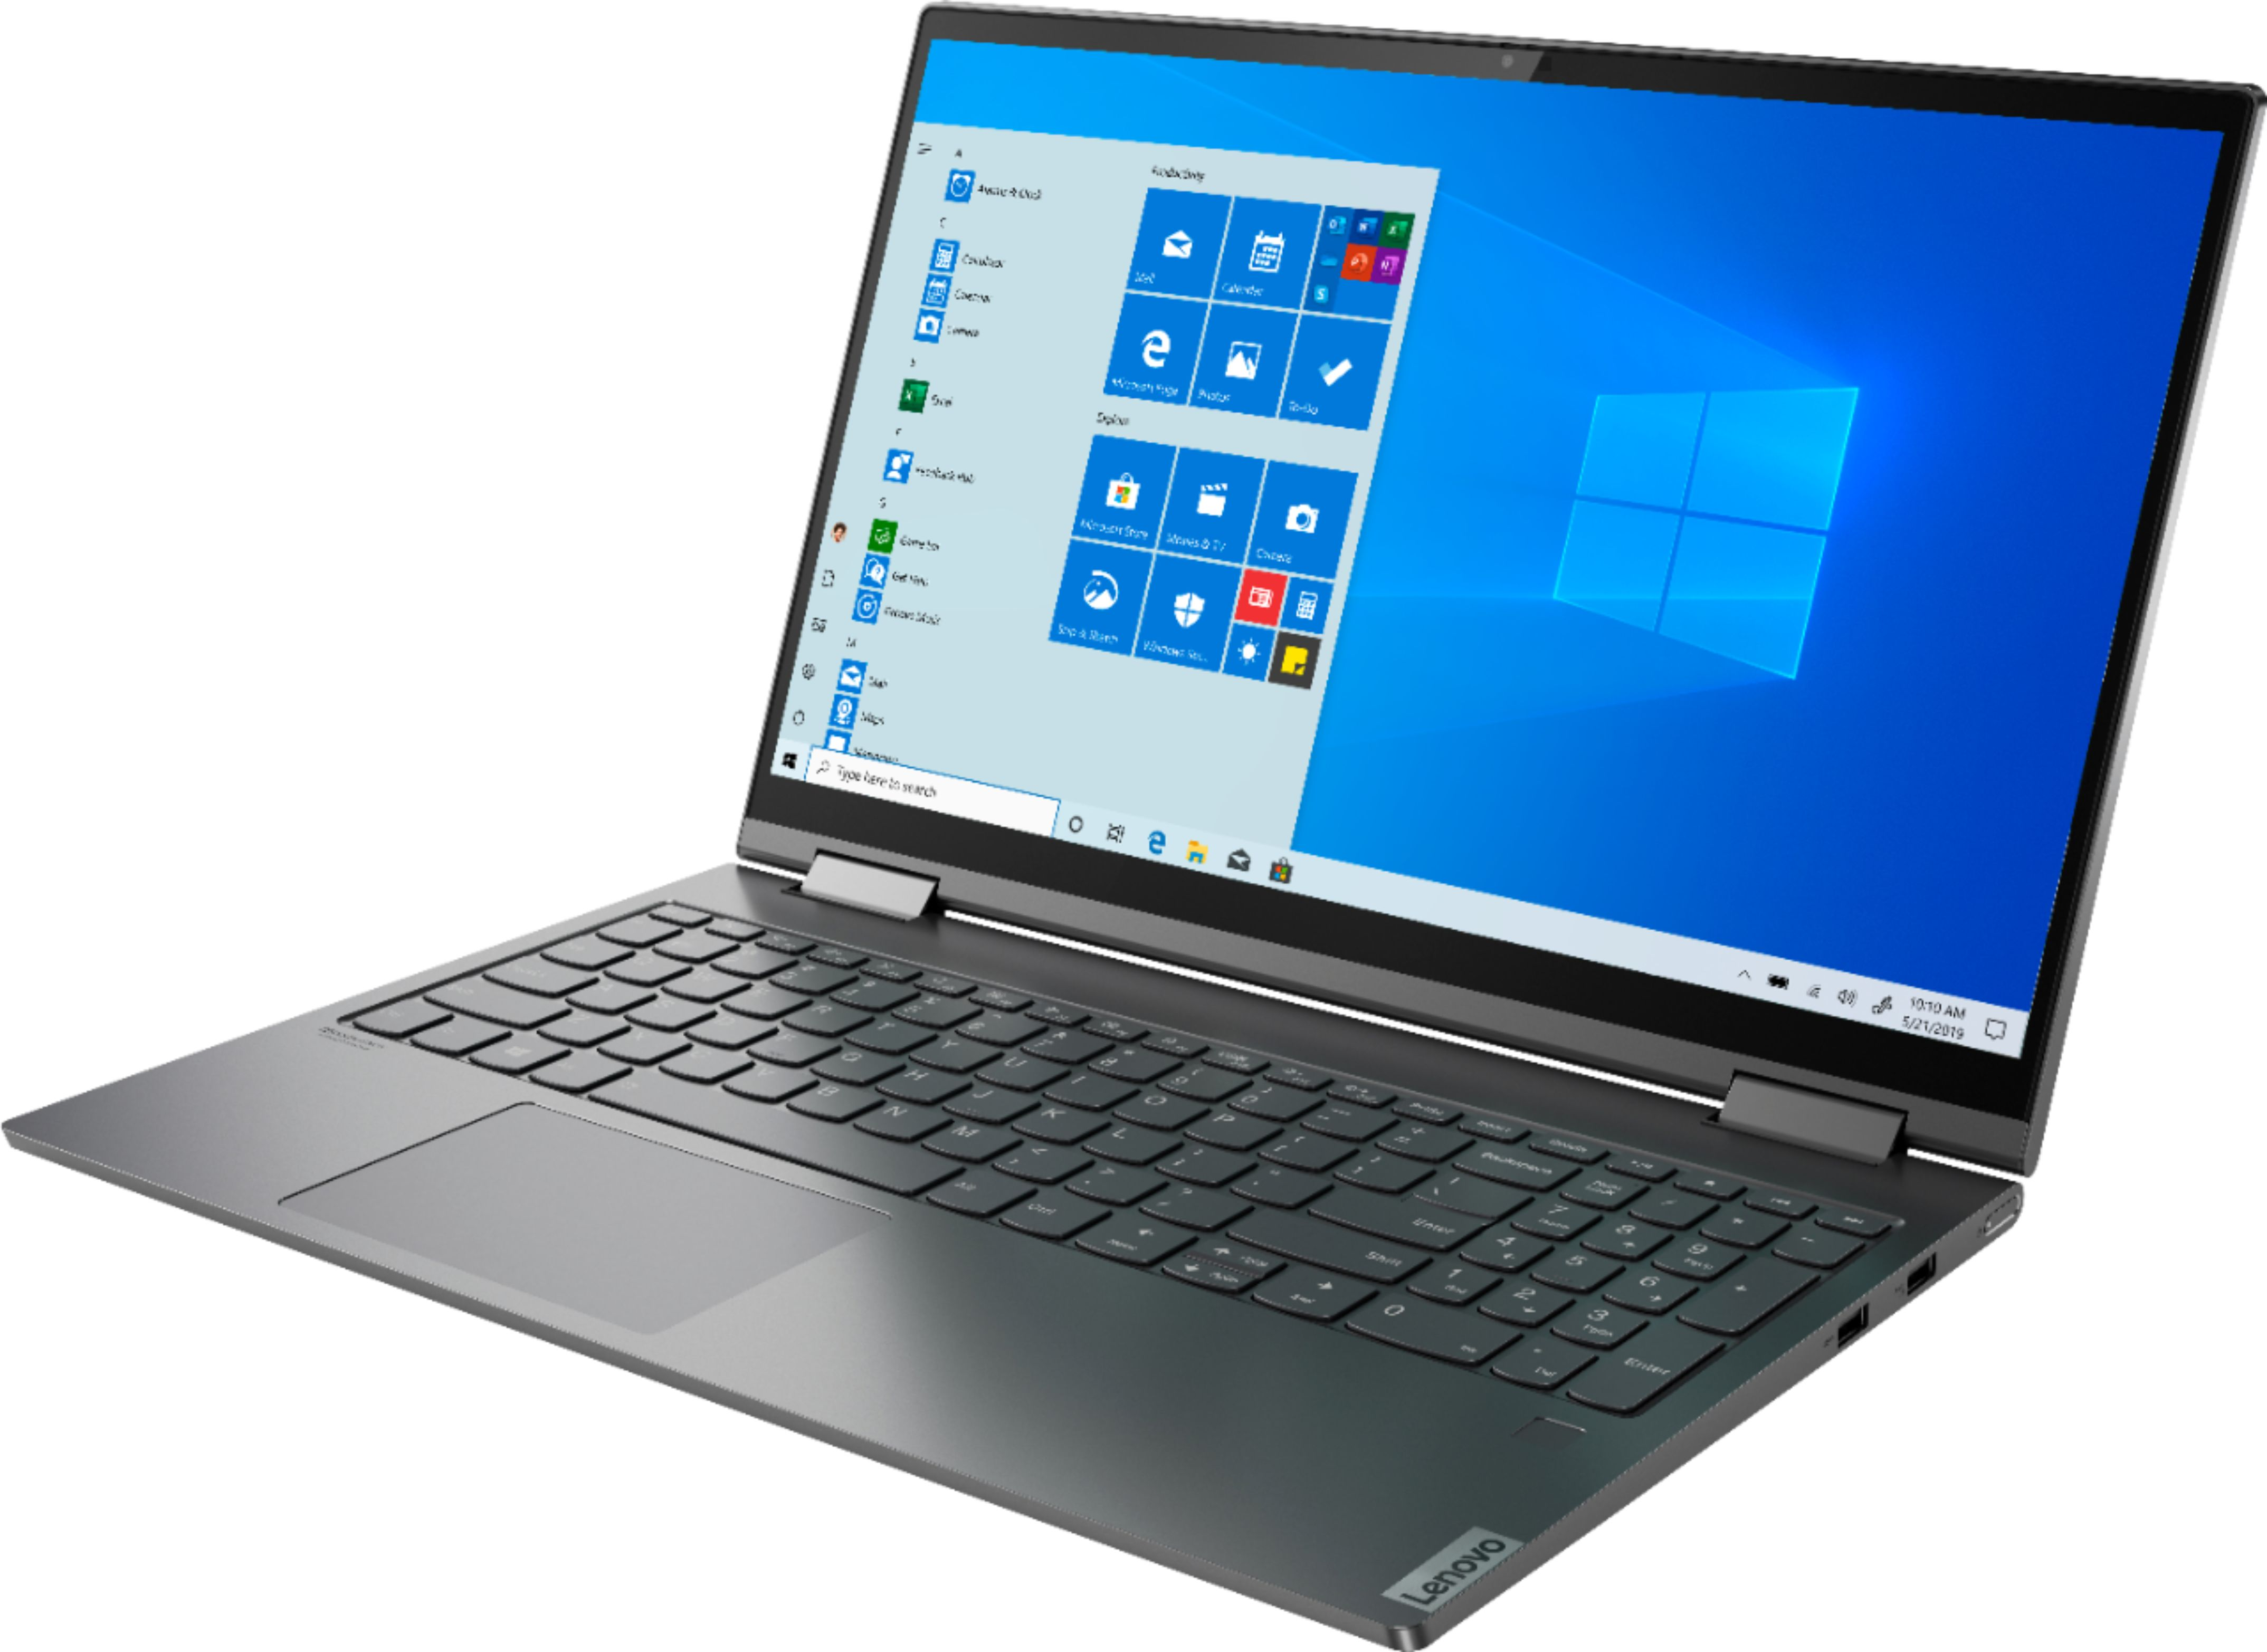 """Left Zoom. Lenovo - Yoga C740 2-in-1 15.6"""" Touch-Screen Laptop - Intel Core i5 - 12GB Memory - 256GB Solid State Drive - Iron Gray."""